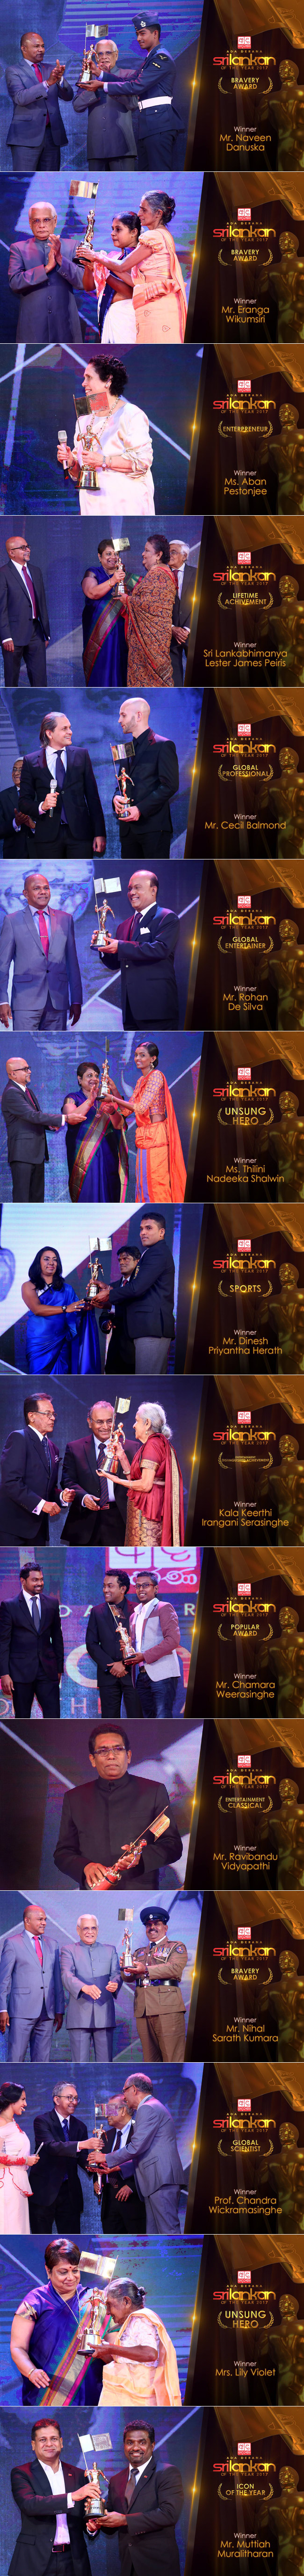 Ada Derana Sri Lankan of the Year 2017 - award winners